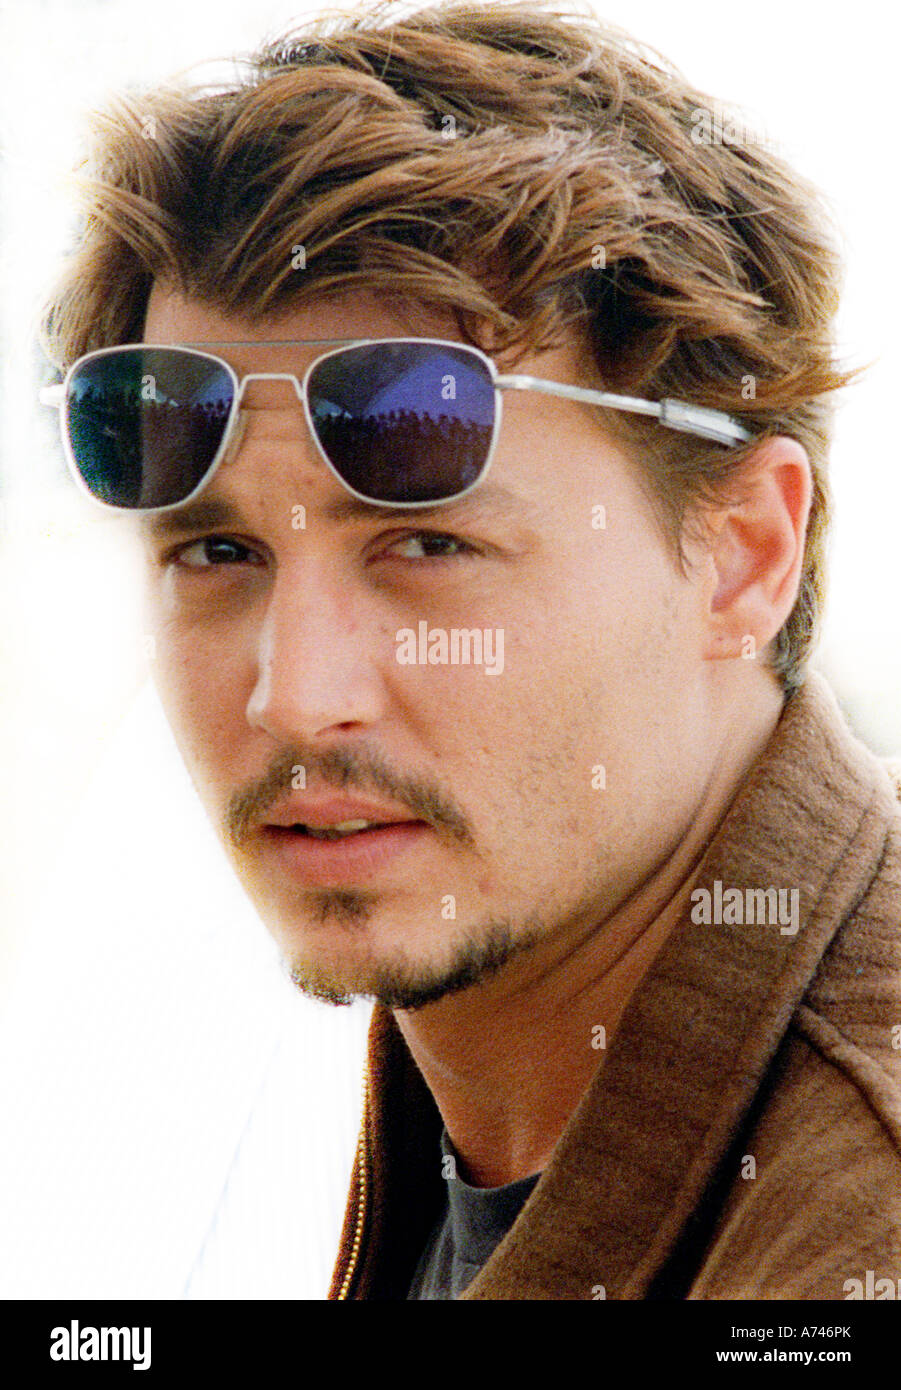 CANNES FILM FESTIVAL FRANCE JOHNNY DEPP ACTOR PROMOTING FEAR AND LOATHING IN LAS VEGAS - Stock Image